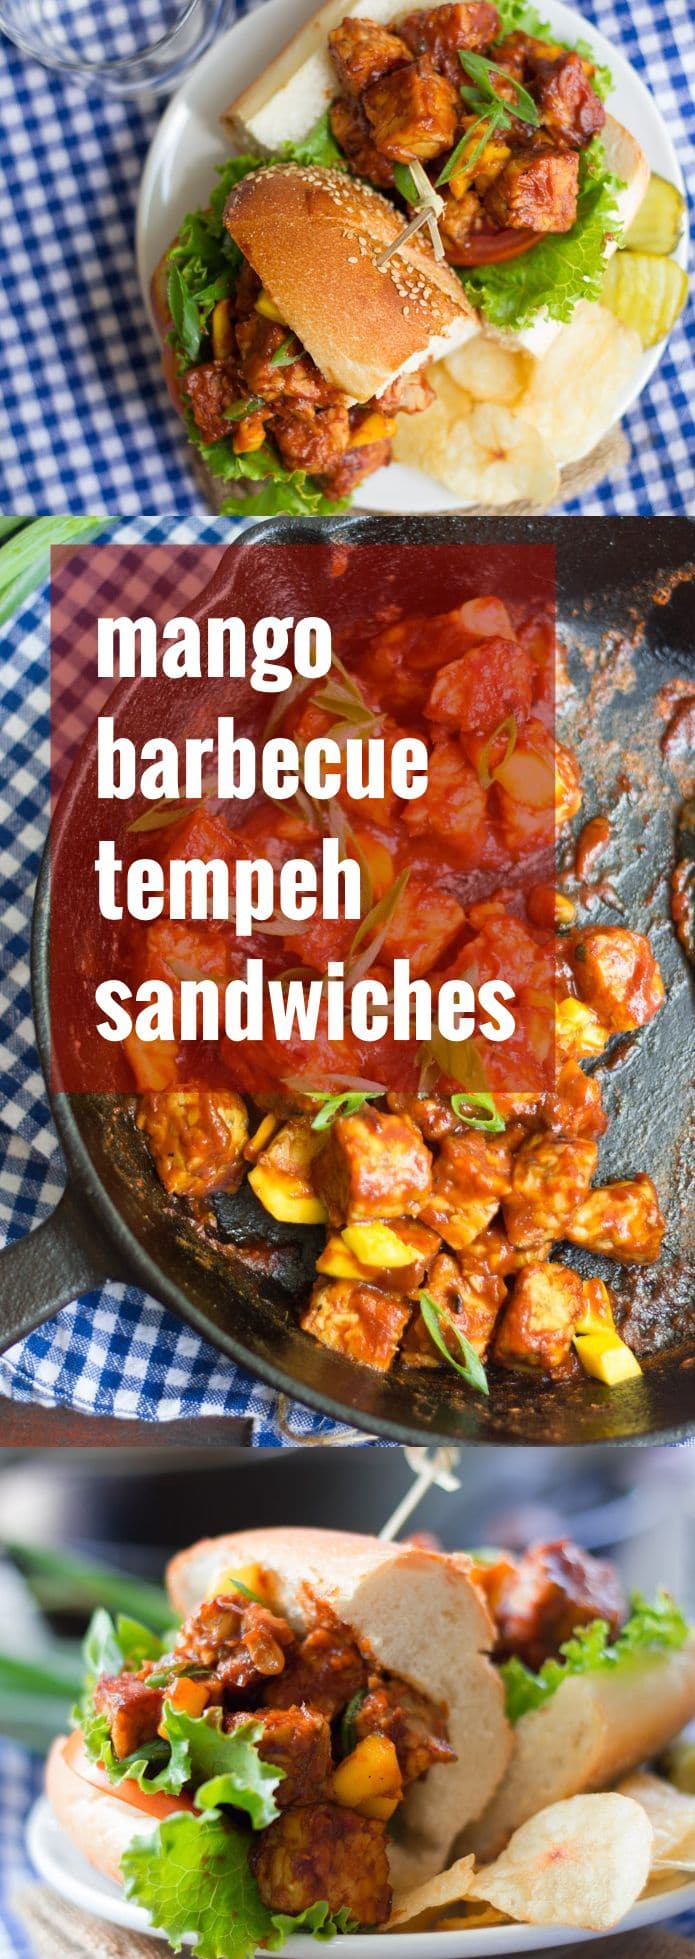 Mango Barbecue Tempeh Sandwiches